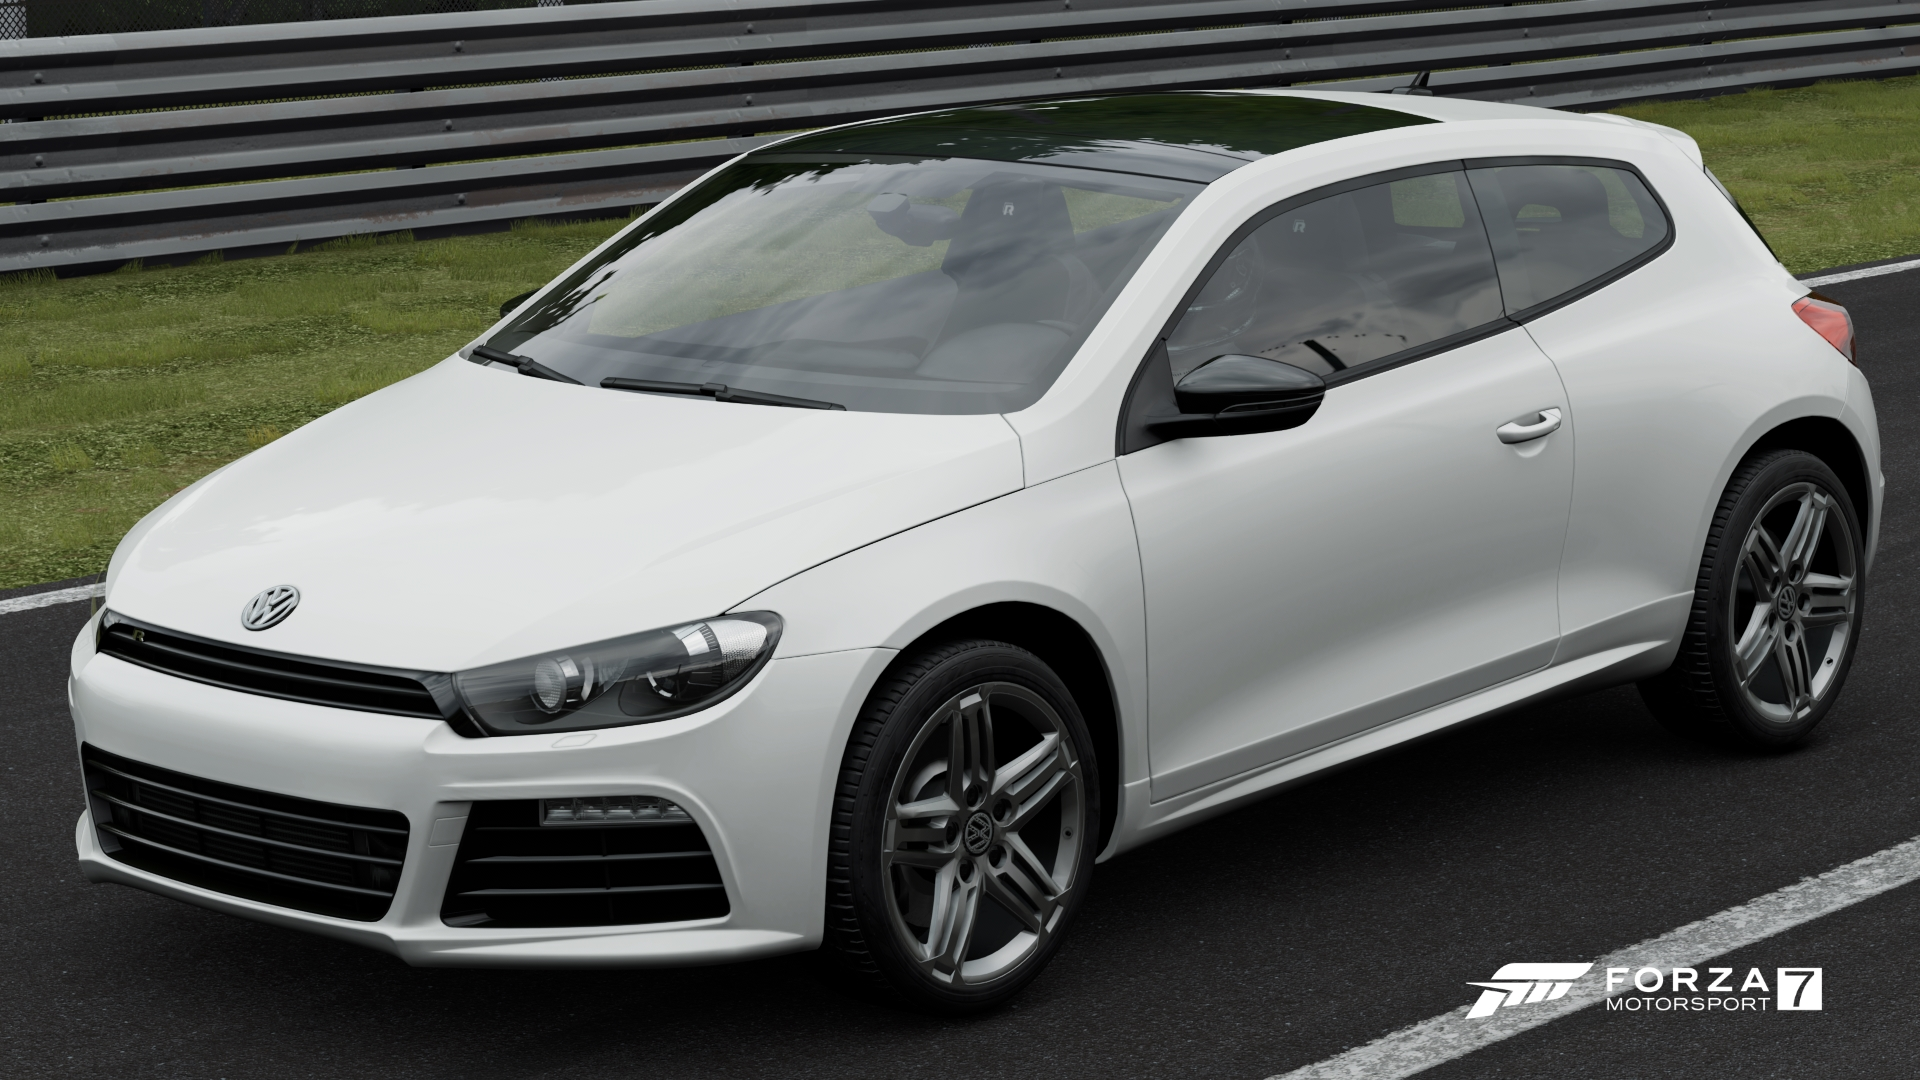 volkswagen scirocco r forza motorsport wiki fandom. Black Bedroom Furniture Sets. Home Design Ideas